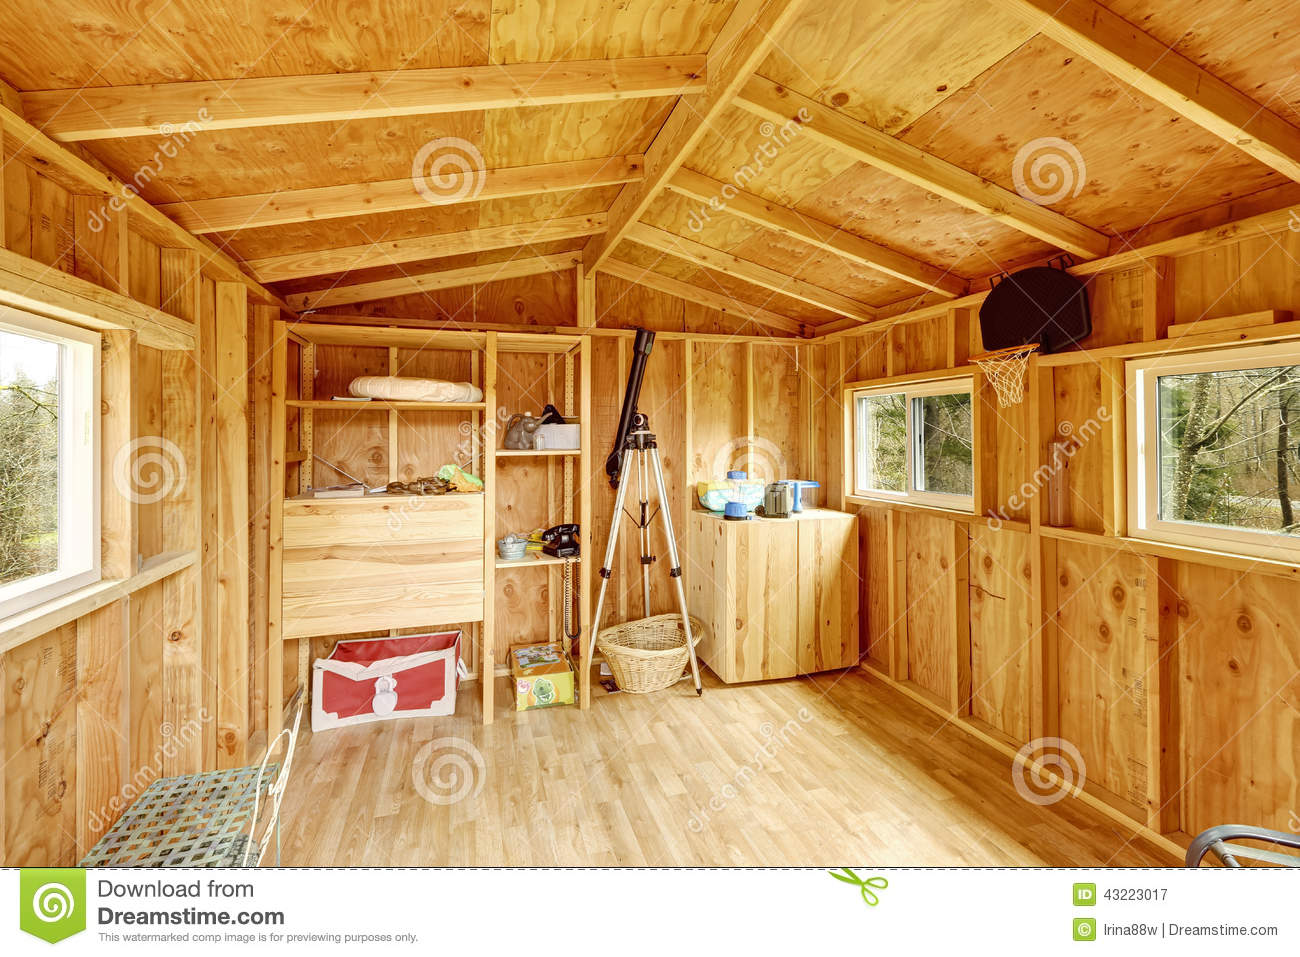 Petit int rieur de cabane dans un arbre photo stock for Campo co interieur